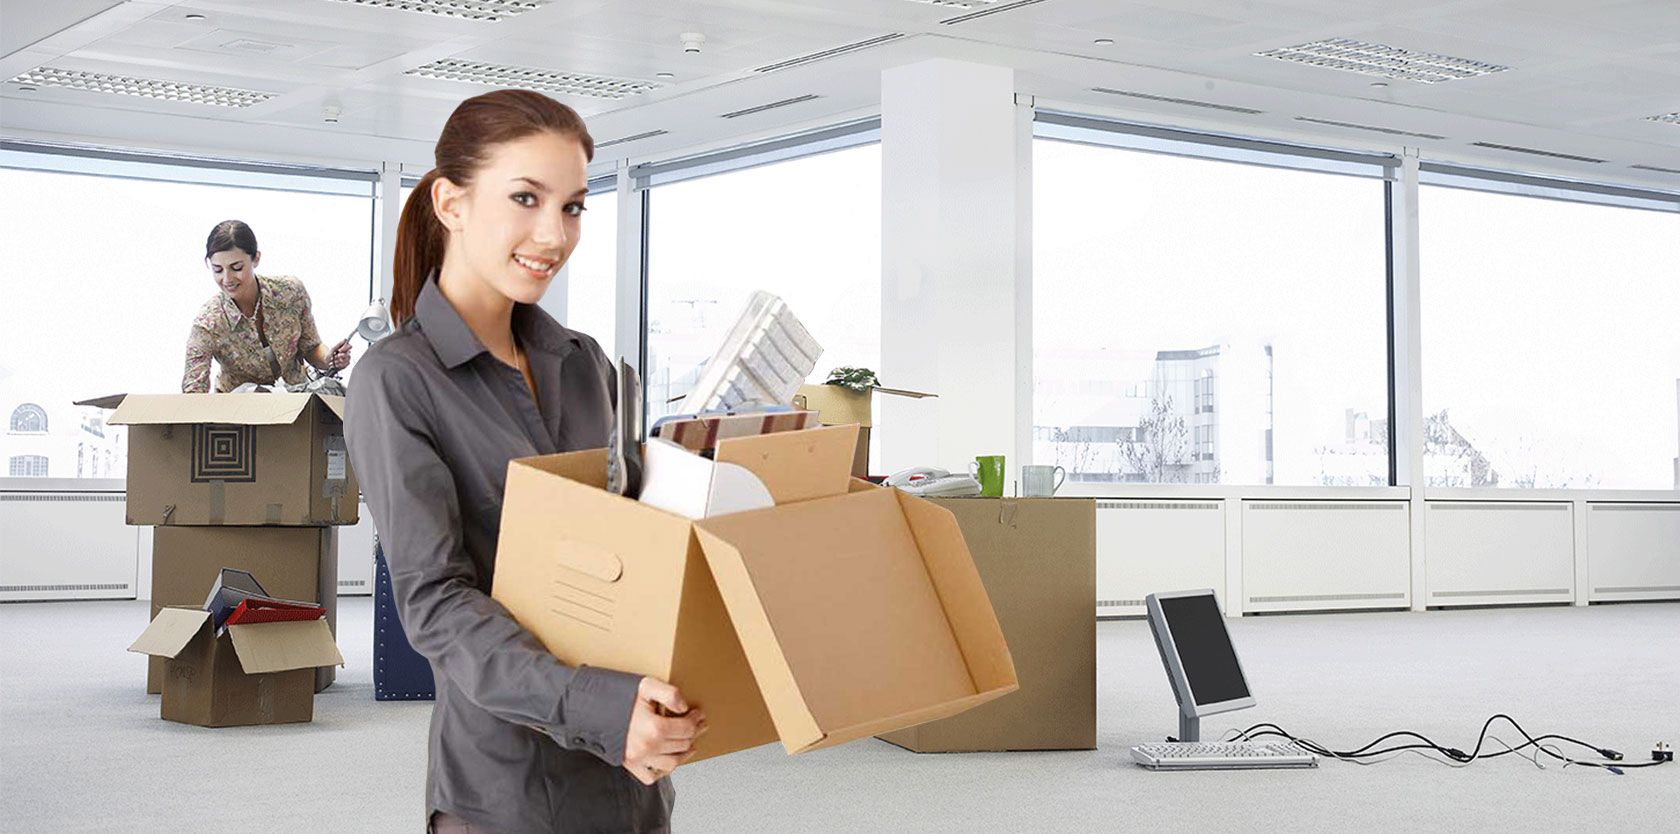 The Best Packers and Movers in fort myers to Help with Relocation